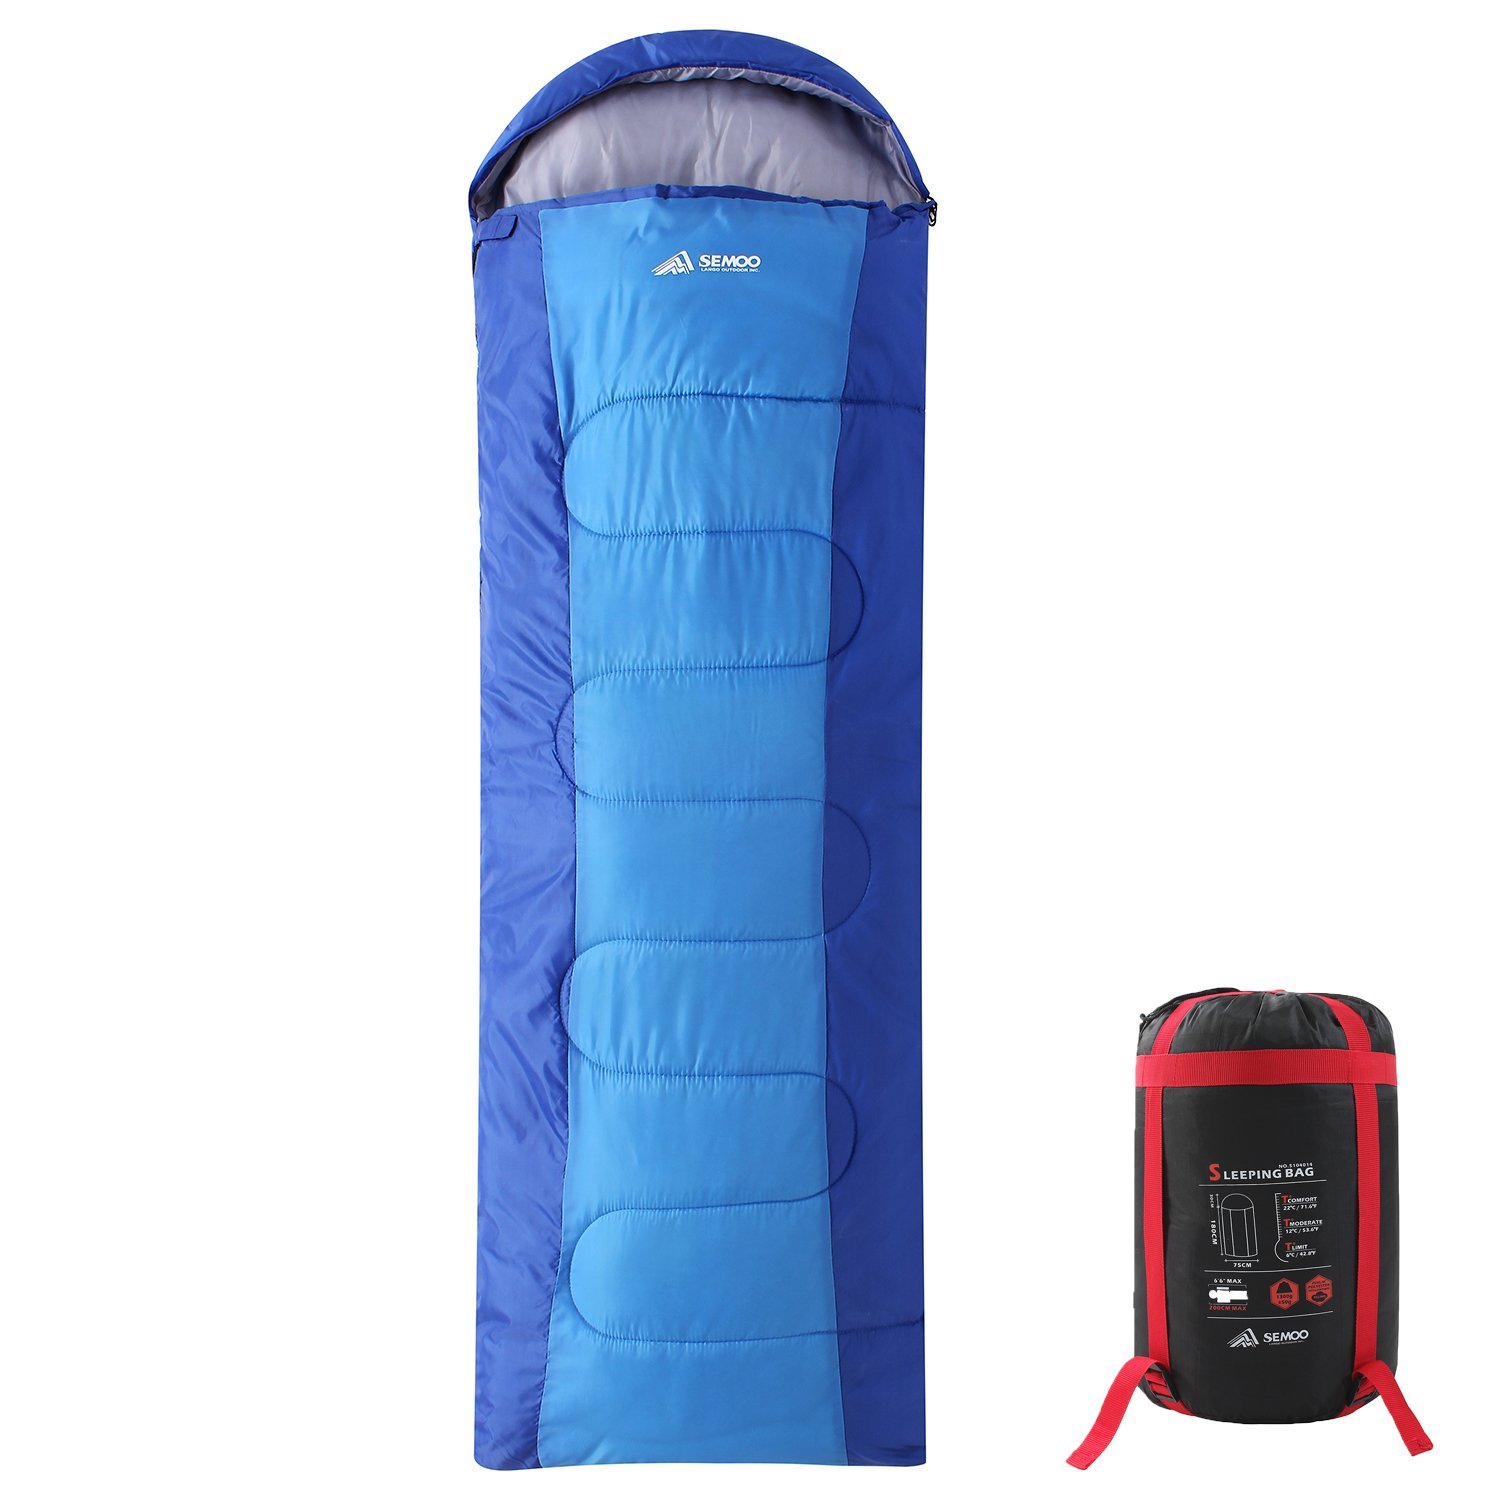 Amazon.com   SEMOO Backpacking Sleeping Bag - Lightweight Portable ... 467db6151f8e